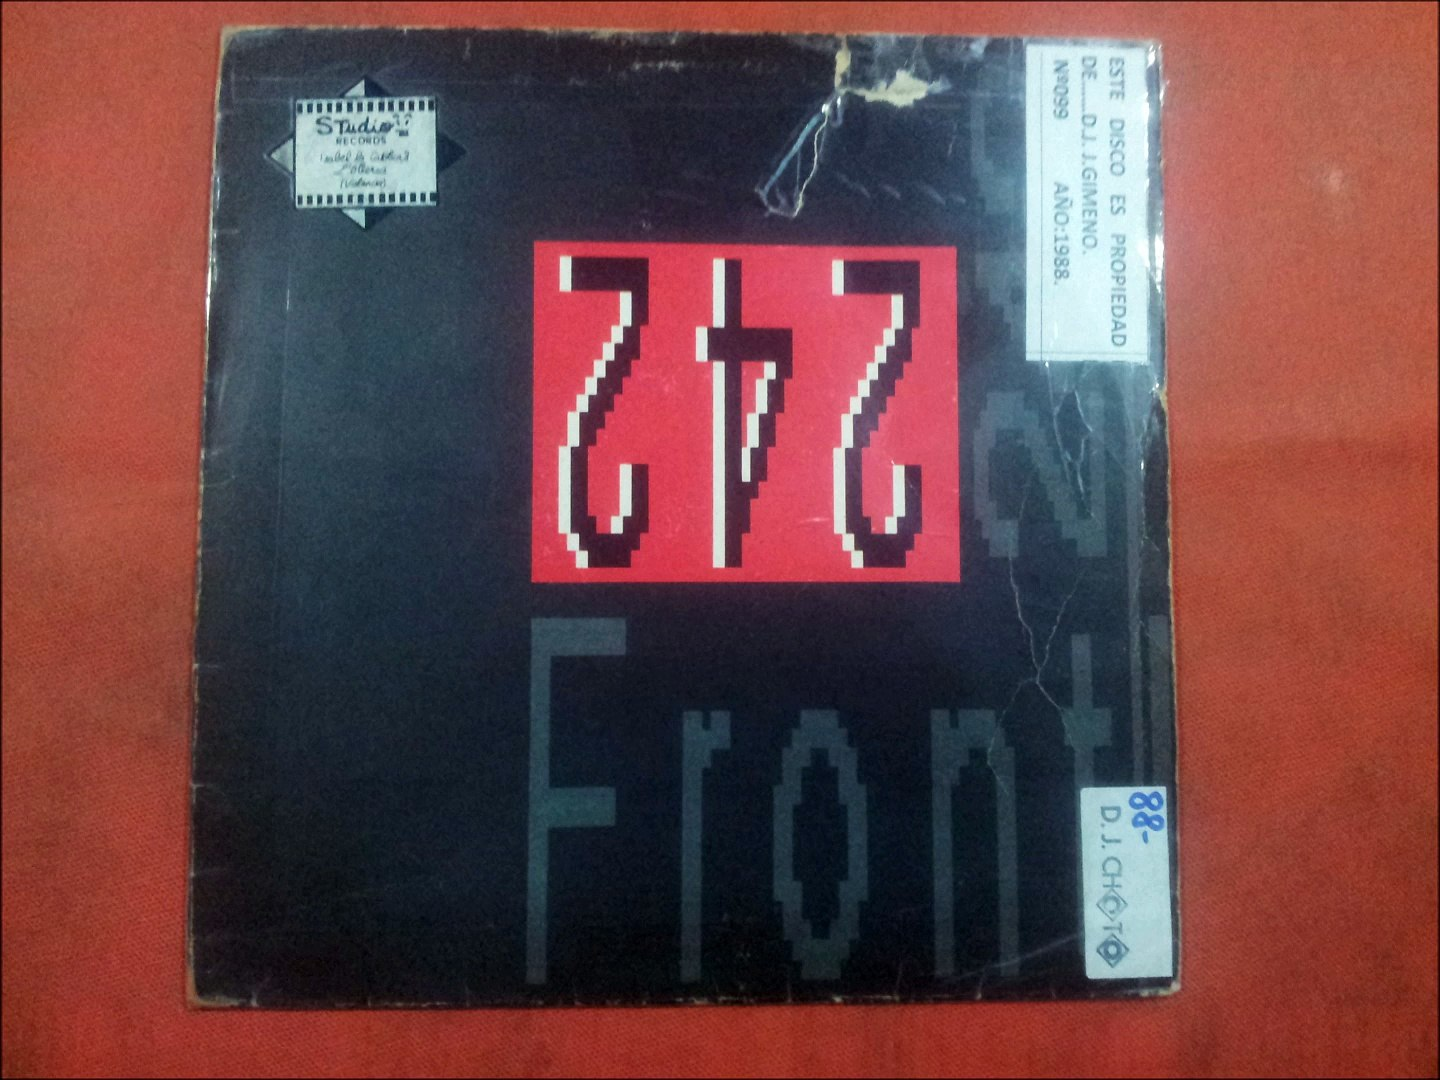 FRONT 242.''FRONT BY FRONT.''.(WORK 01.)(12'' LP.)(1988.)